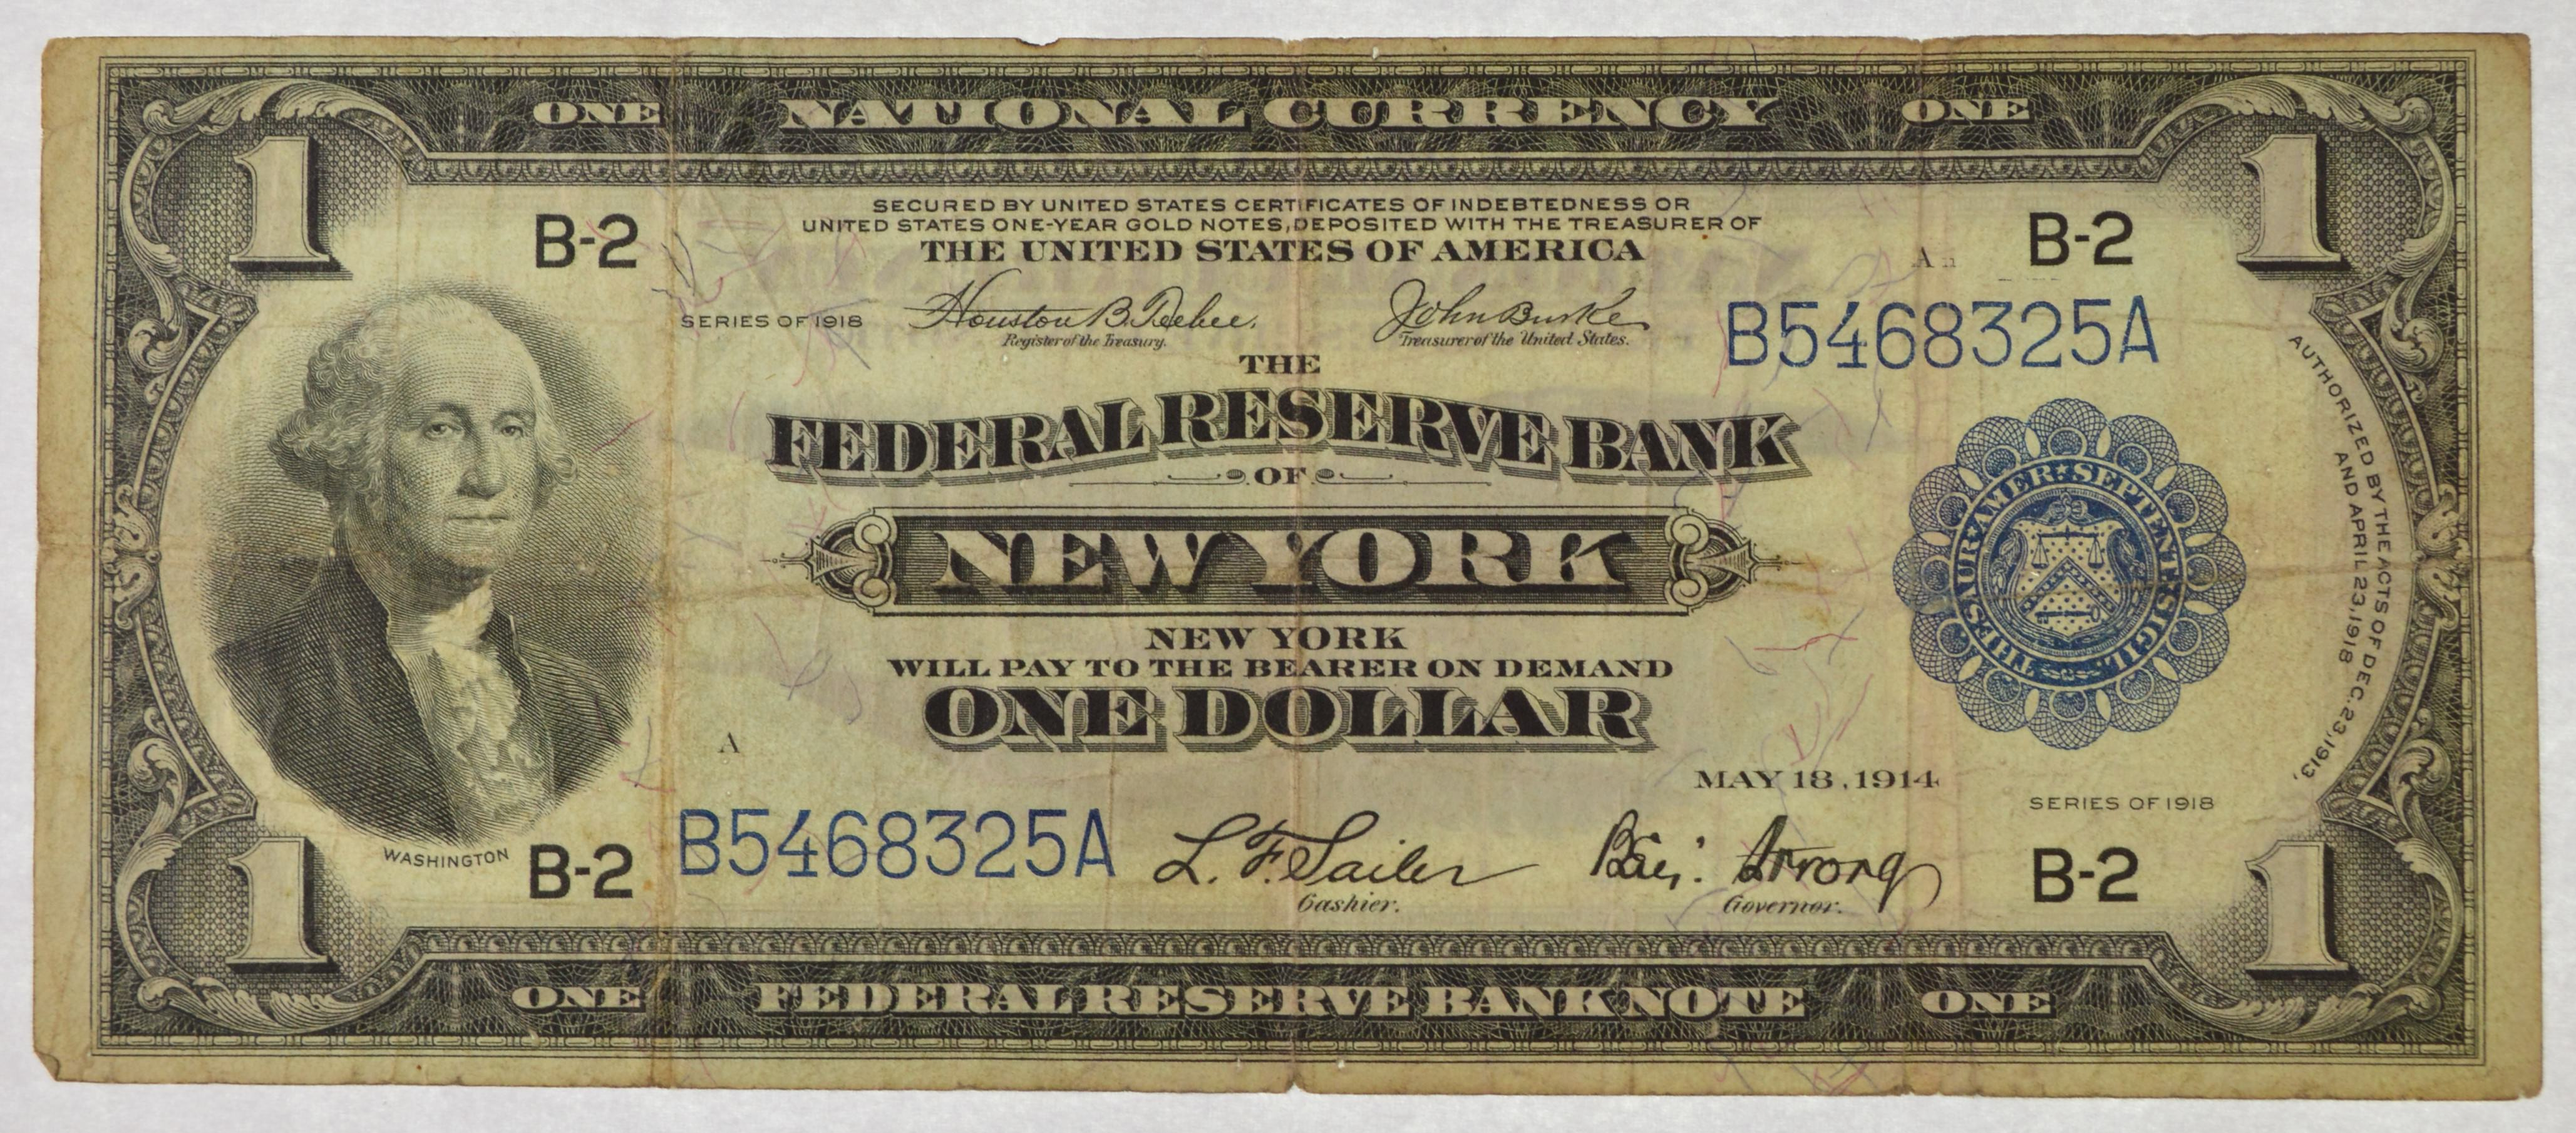 Series 1918 Large National Currency New